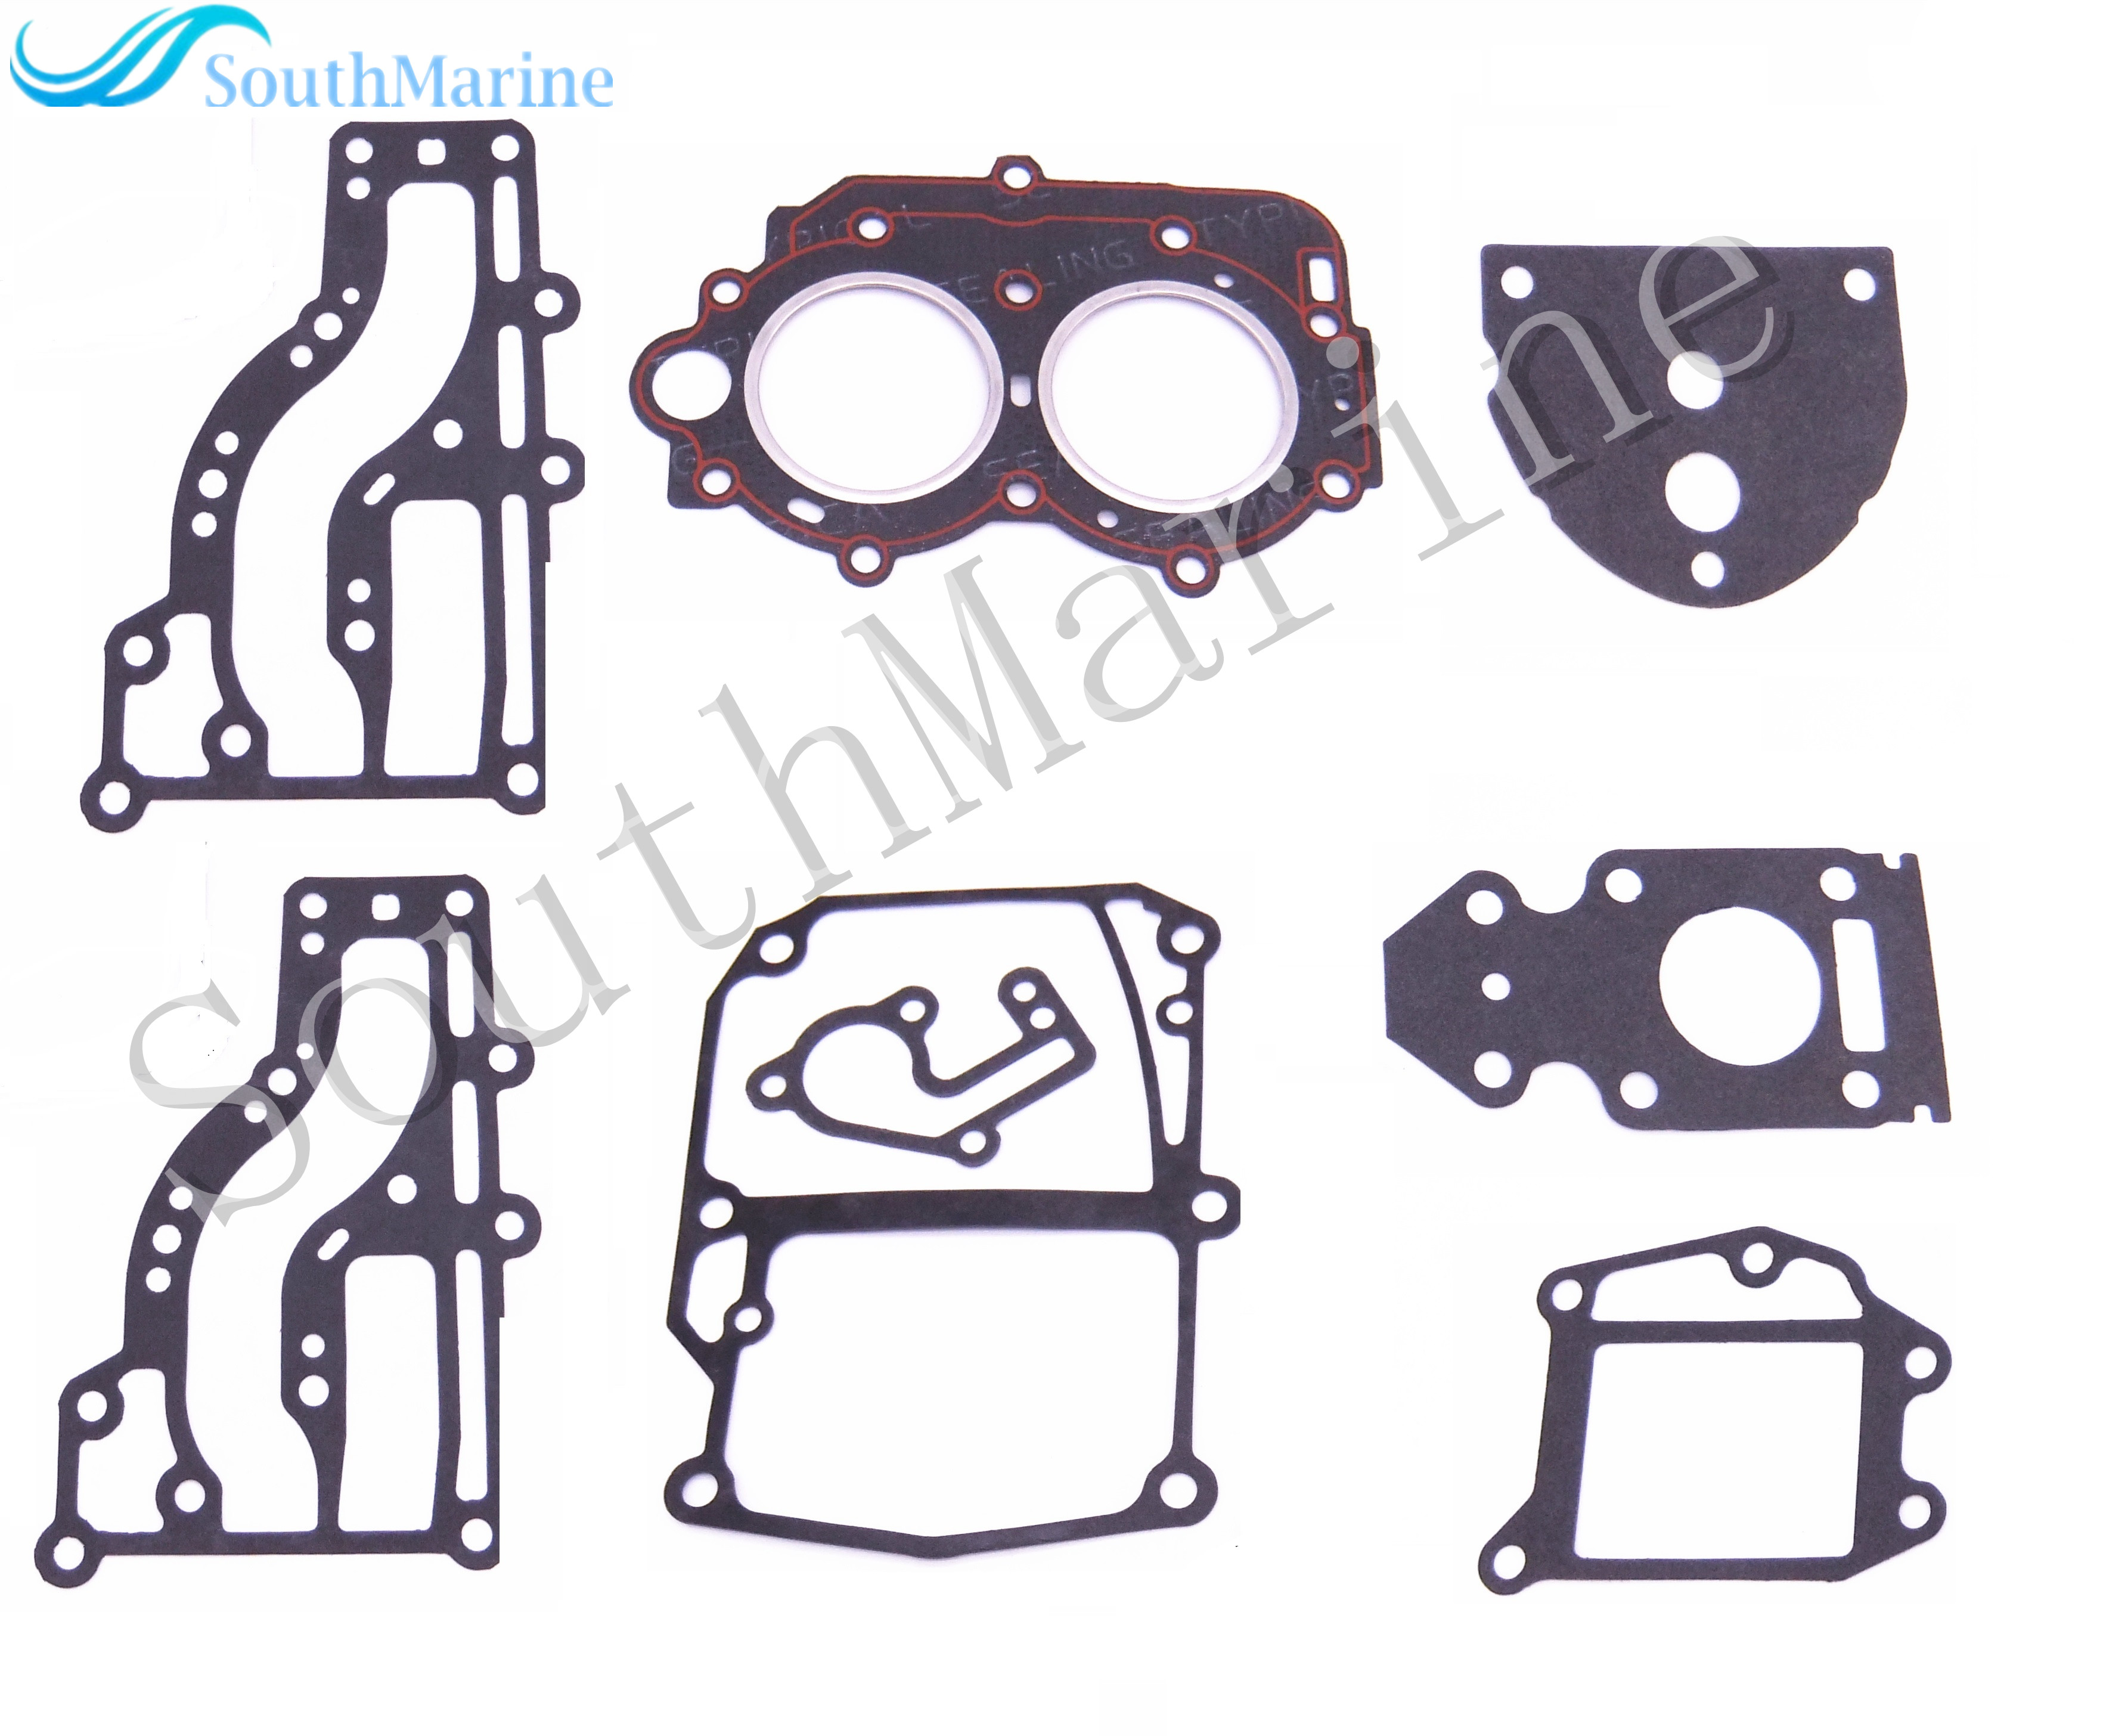 Outboard Motors Free Shipping Boat Engines Complete Head Power Seal Gasket Kit for 15F Hidea 9.9F